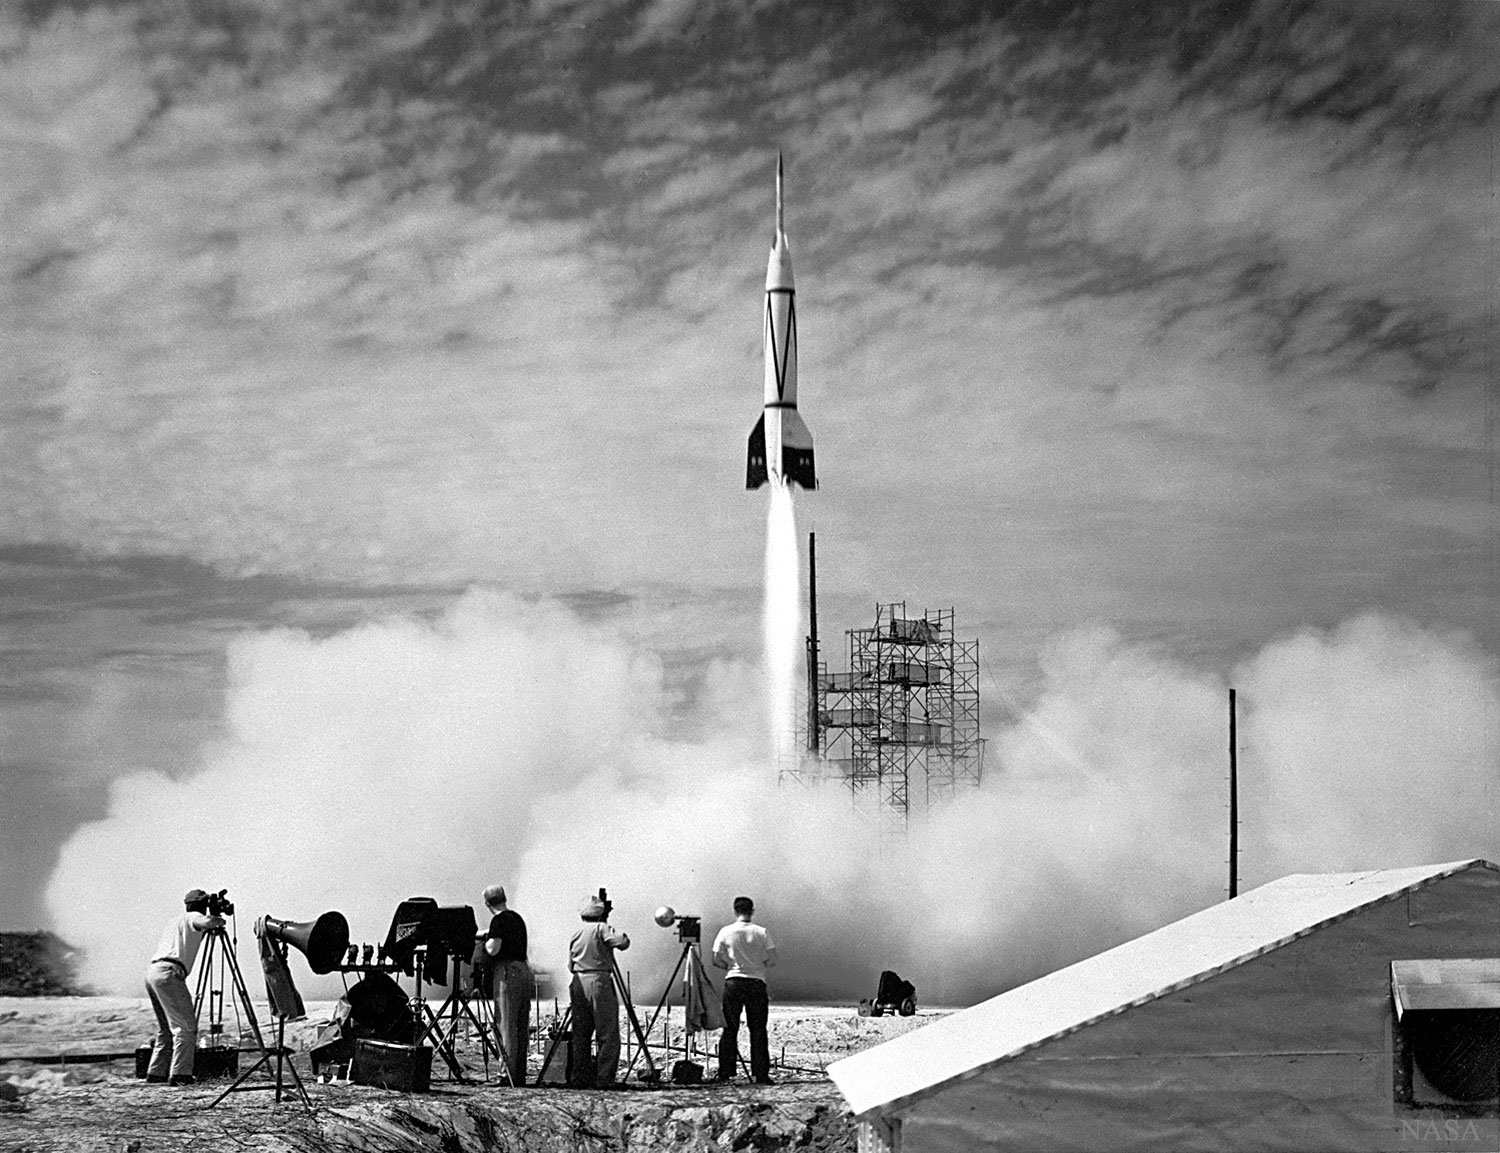 [ASTRONOMIA]   The First Rocket Launch from Cape Canaveral